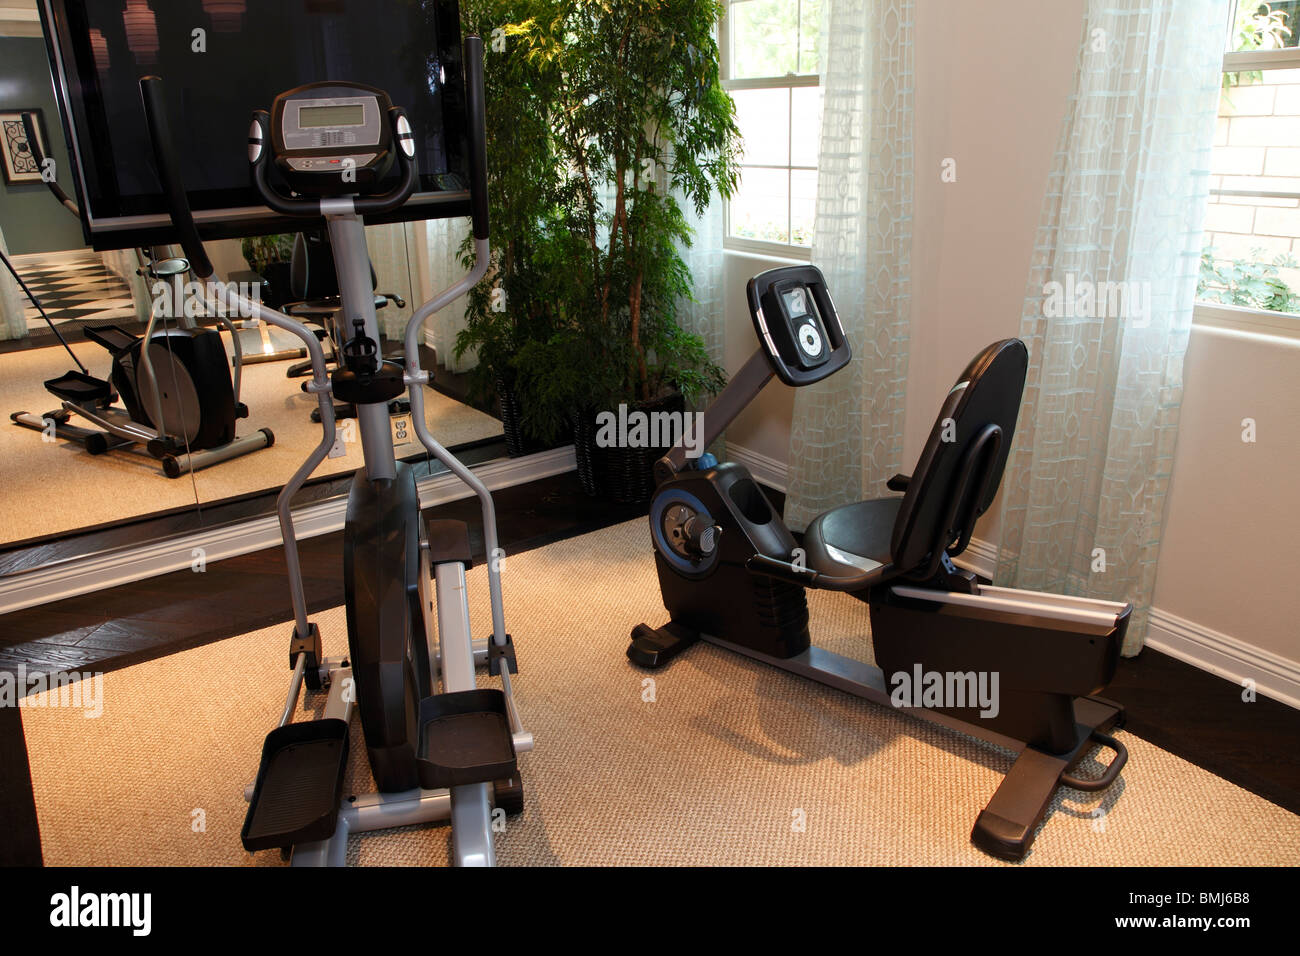 Luxury home gym with modern exercise equipment. - Stock Image